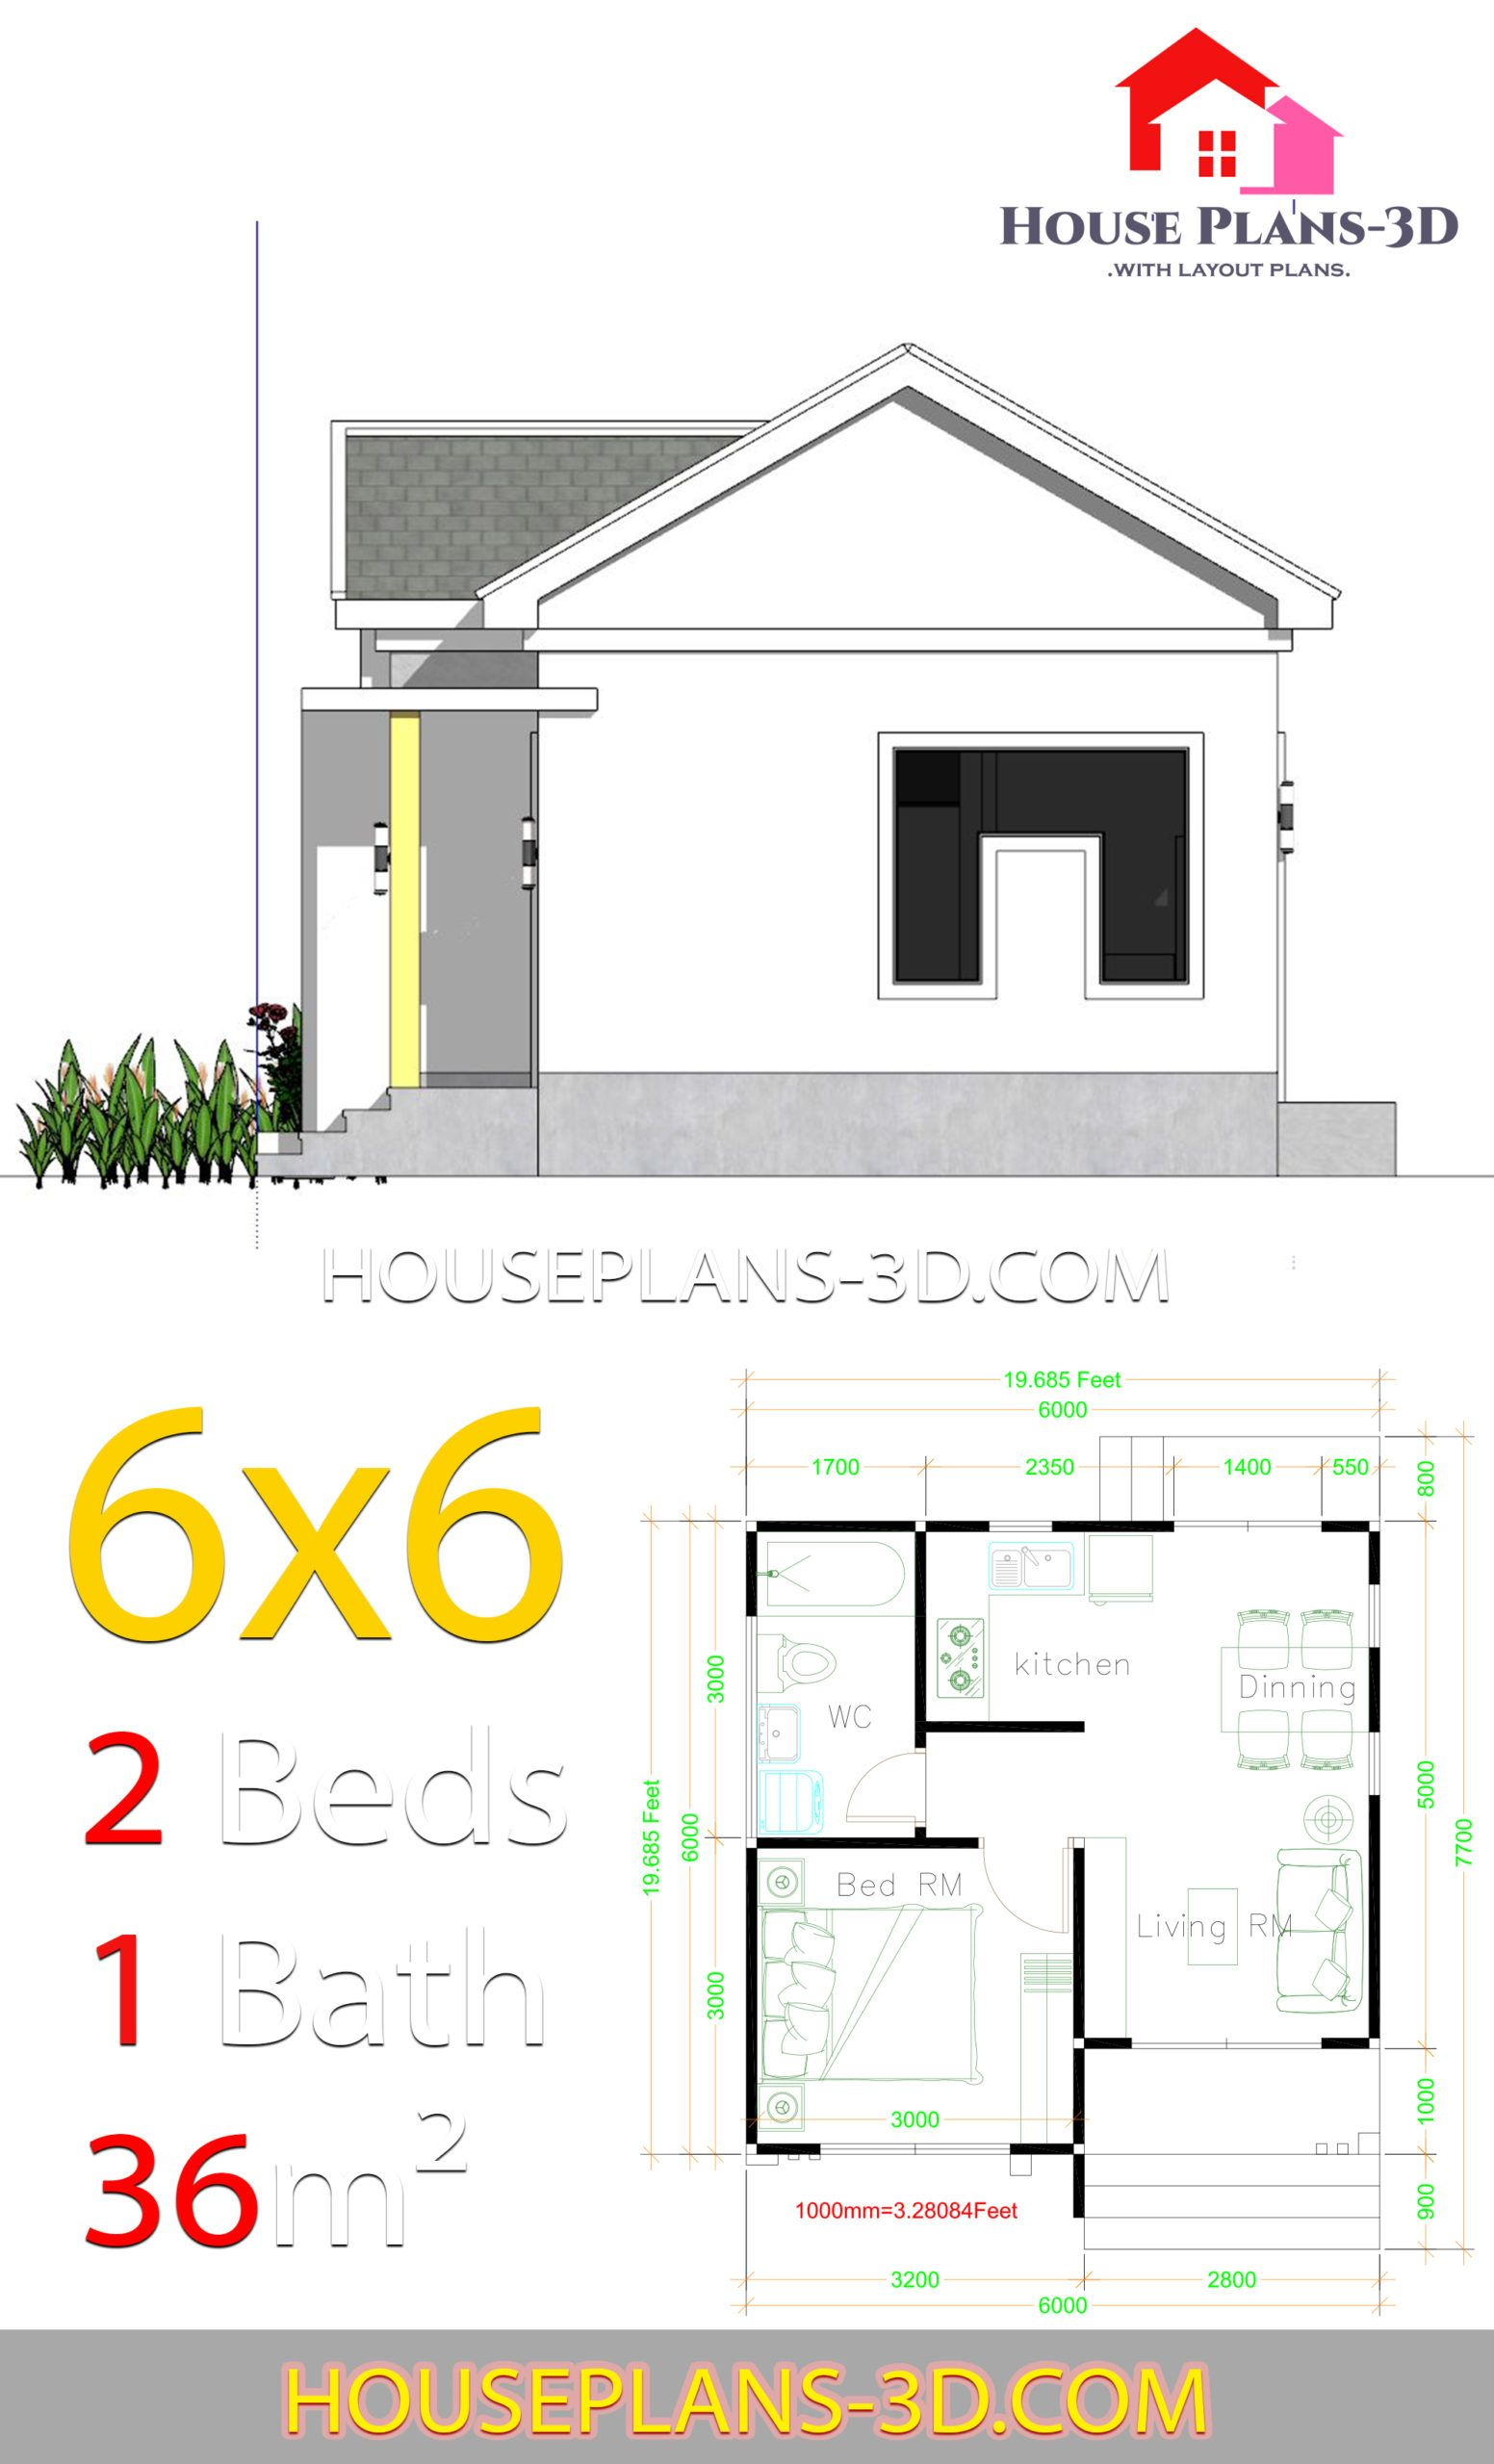 House Plans 6x6 With One Bedrooms Gable Roof House Plans 3d House Plans House Layout Plans House Roof